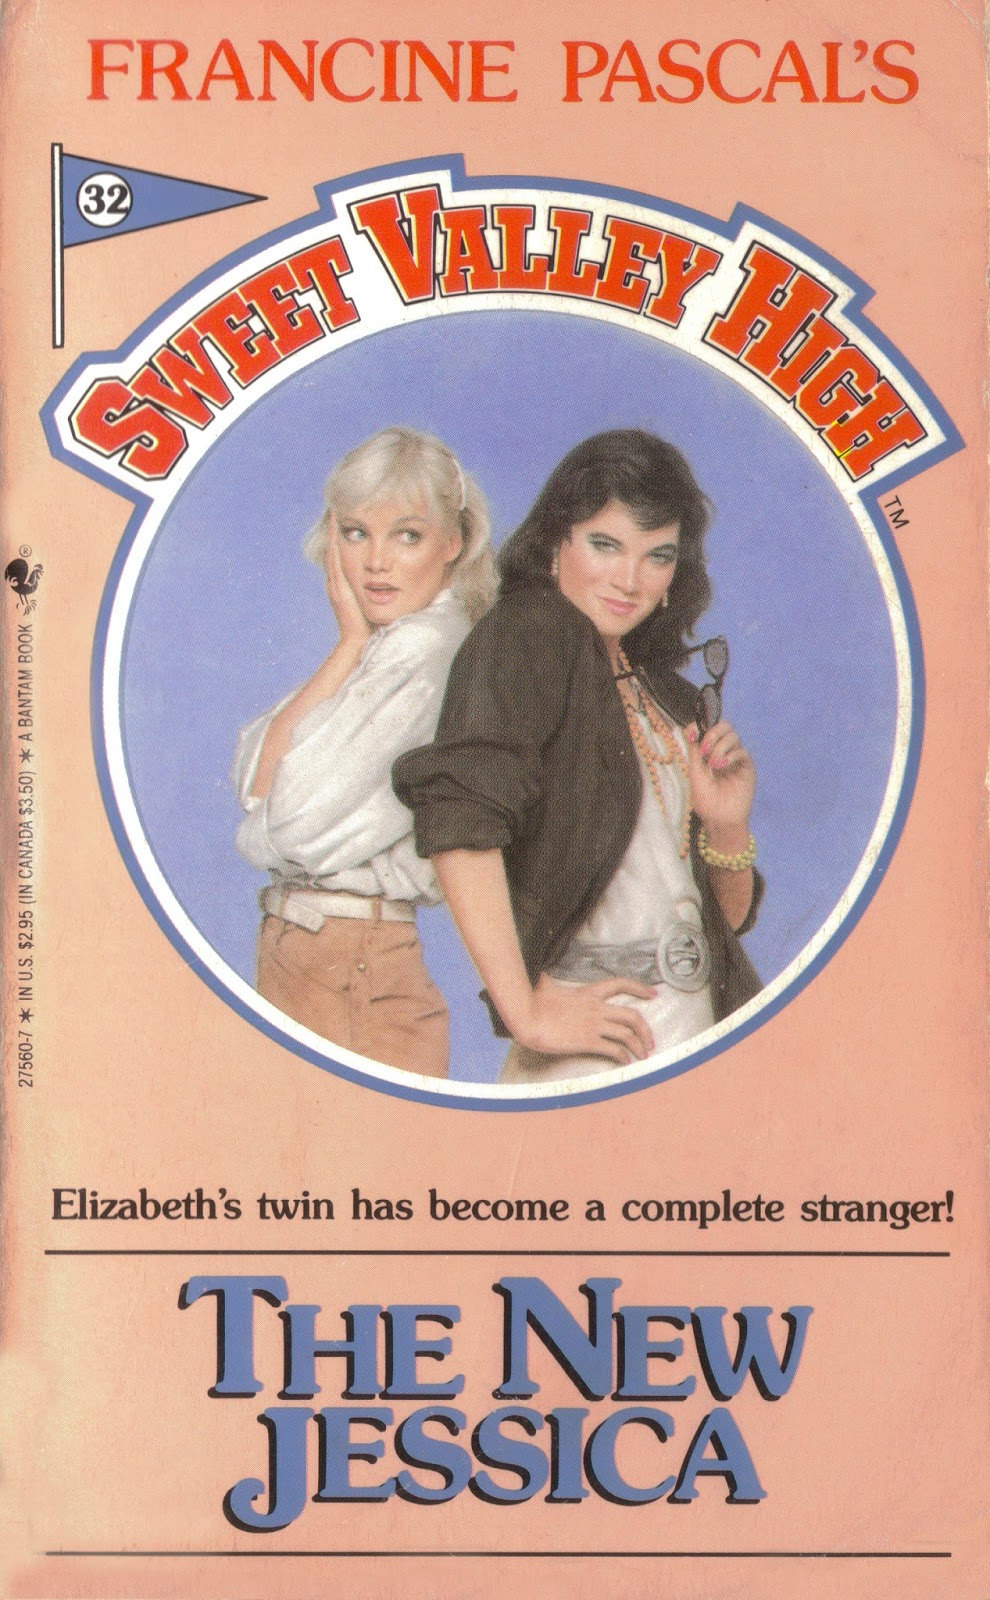 Red Lemonade Sweet Valley High Revisited The New Jessica